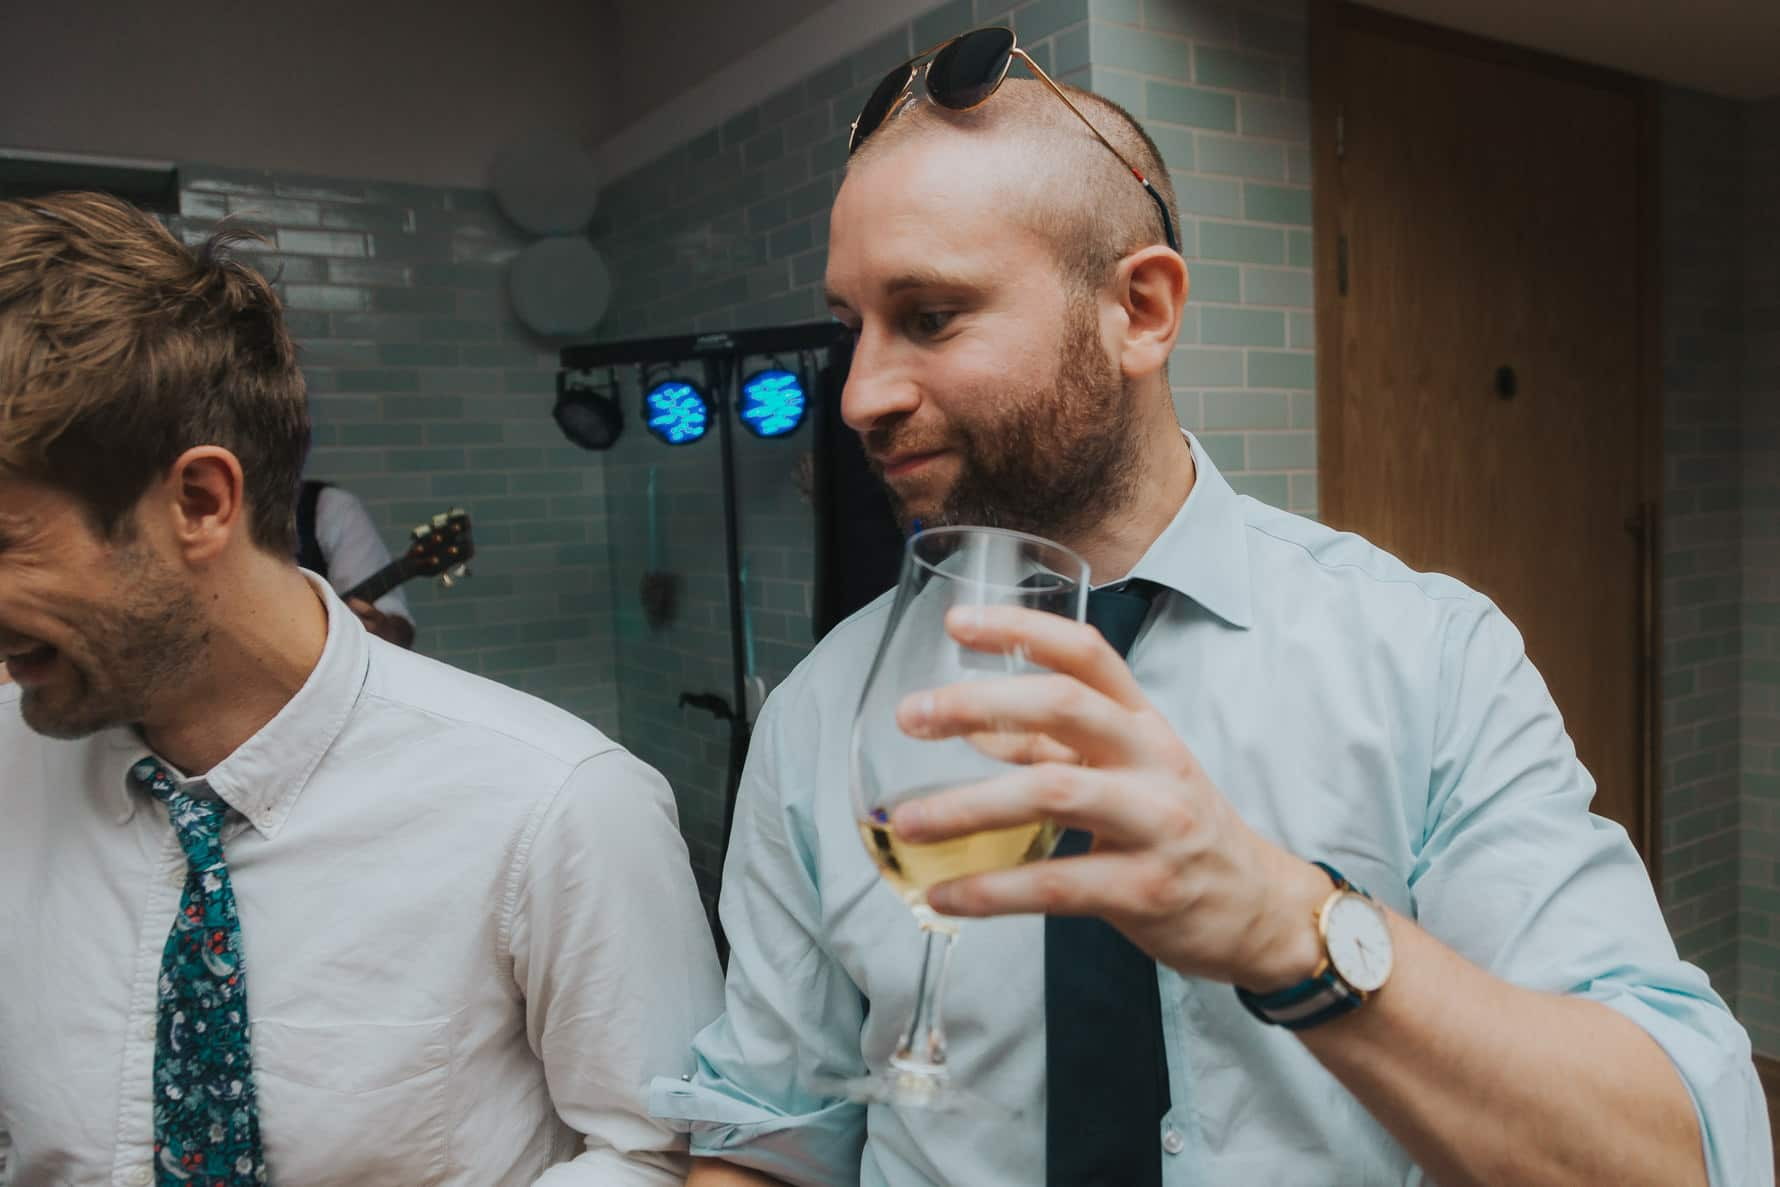 Wedding guest celebrating and drinking a pint of beer